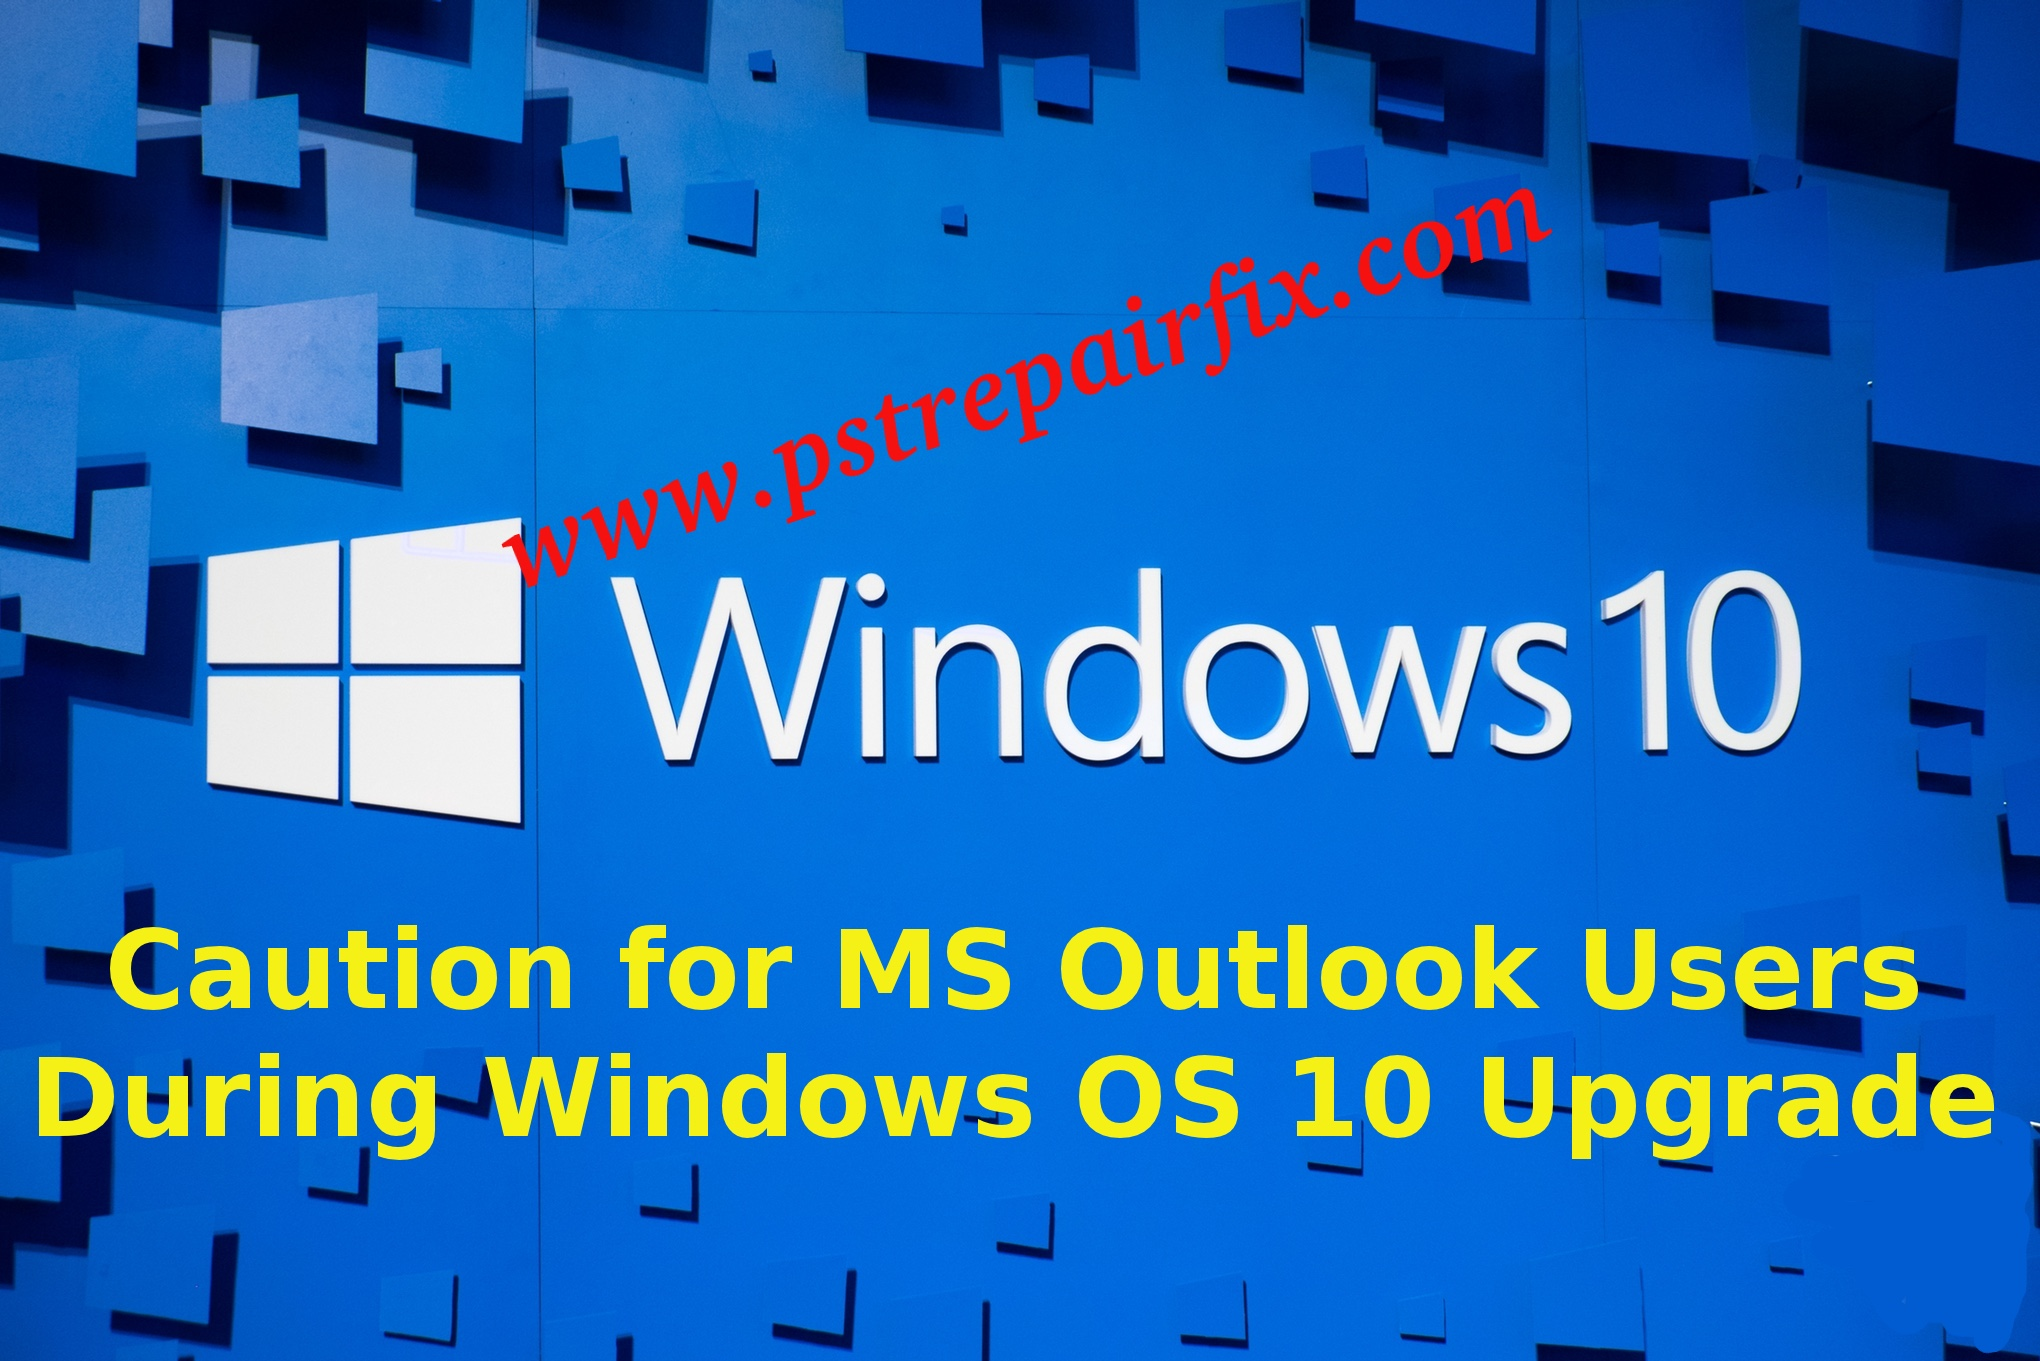 Caution for MS Outlook Users During Windows OS 10 Upgrade